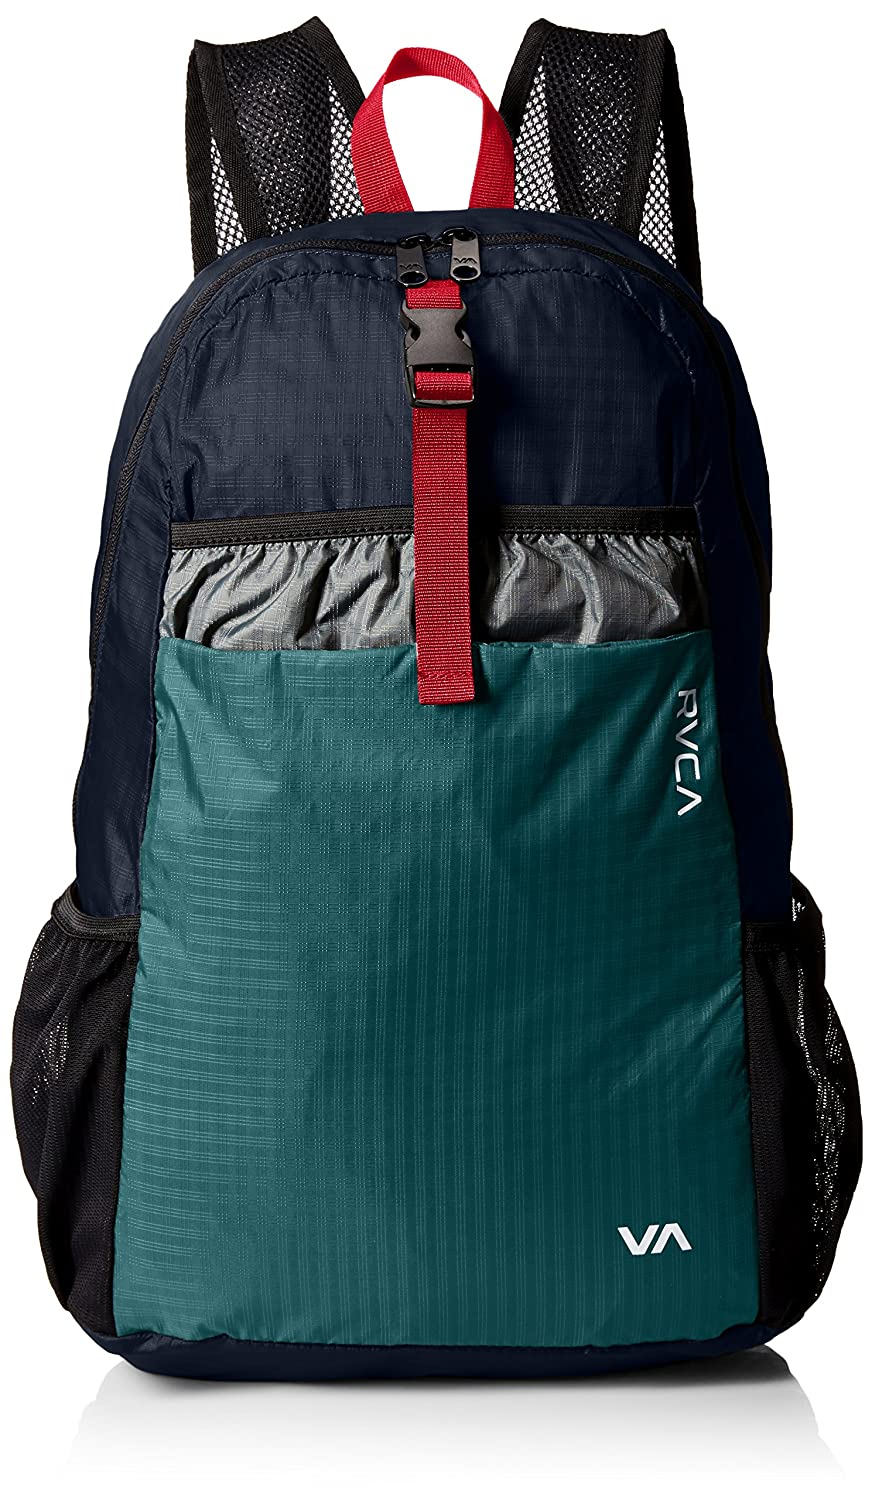 RVCA Men's Densen Packable Backpack black/blue ONE SIZE RVCA Young Men's MFABKDPB